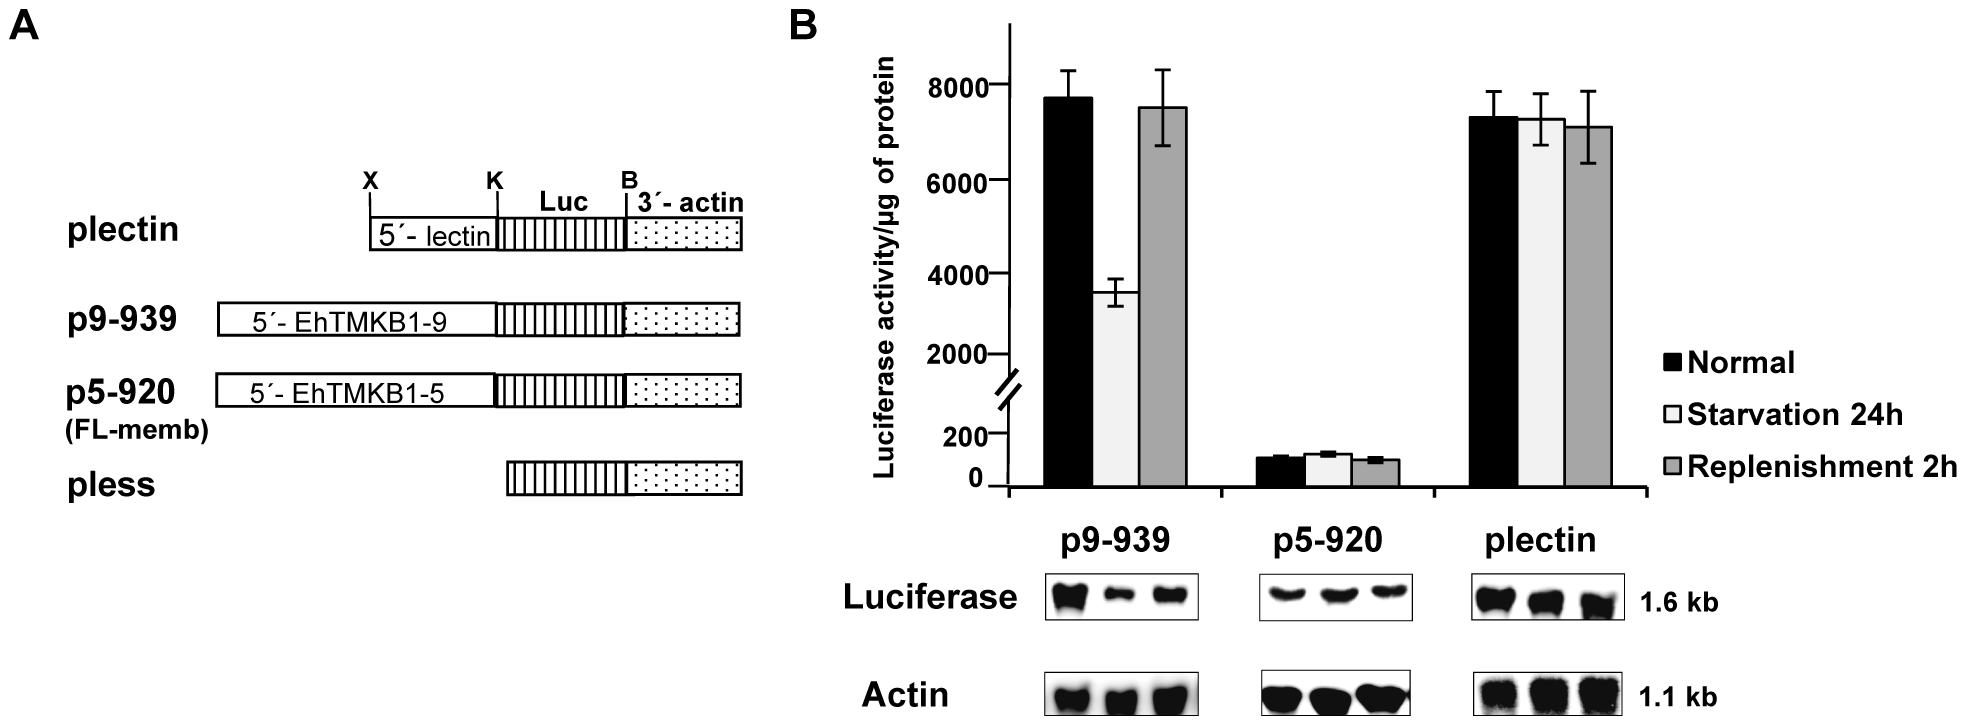 Promoter analysis of EhTMKB1-9 using luciferase as a reporter gene.